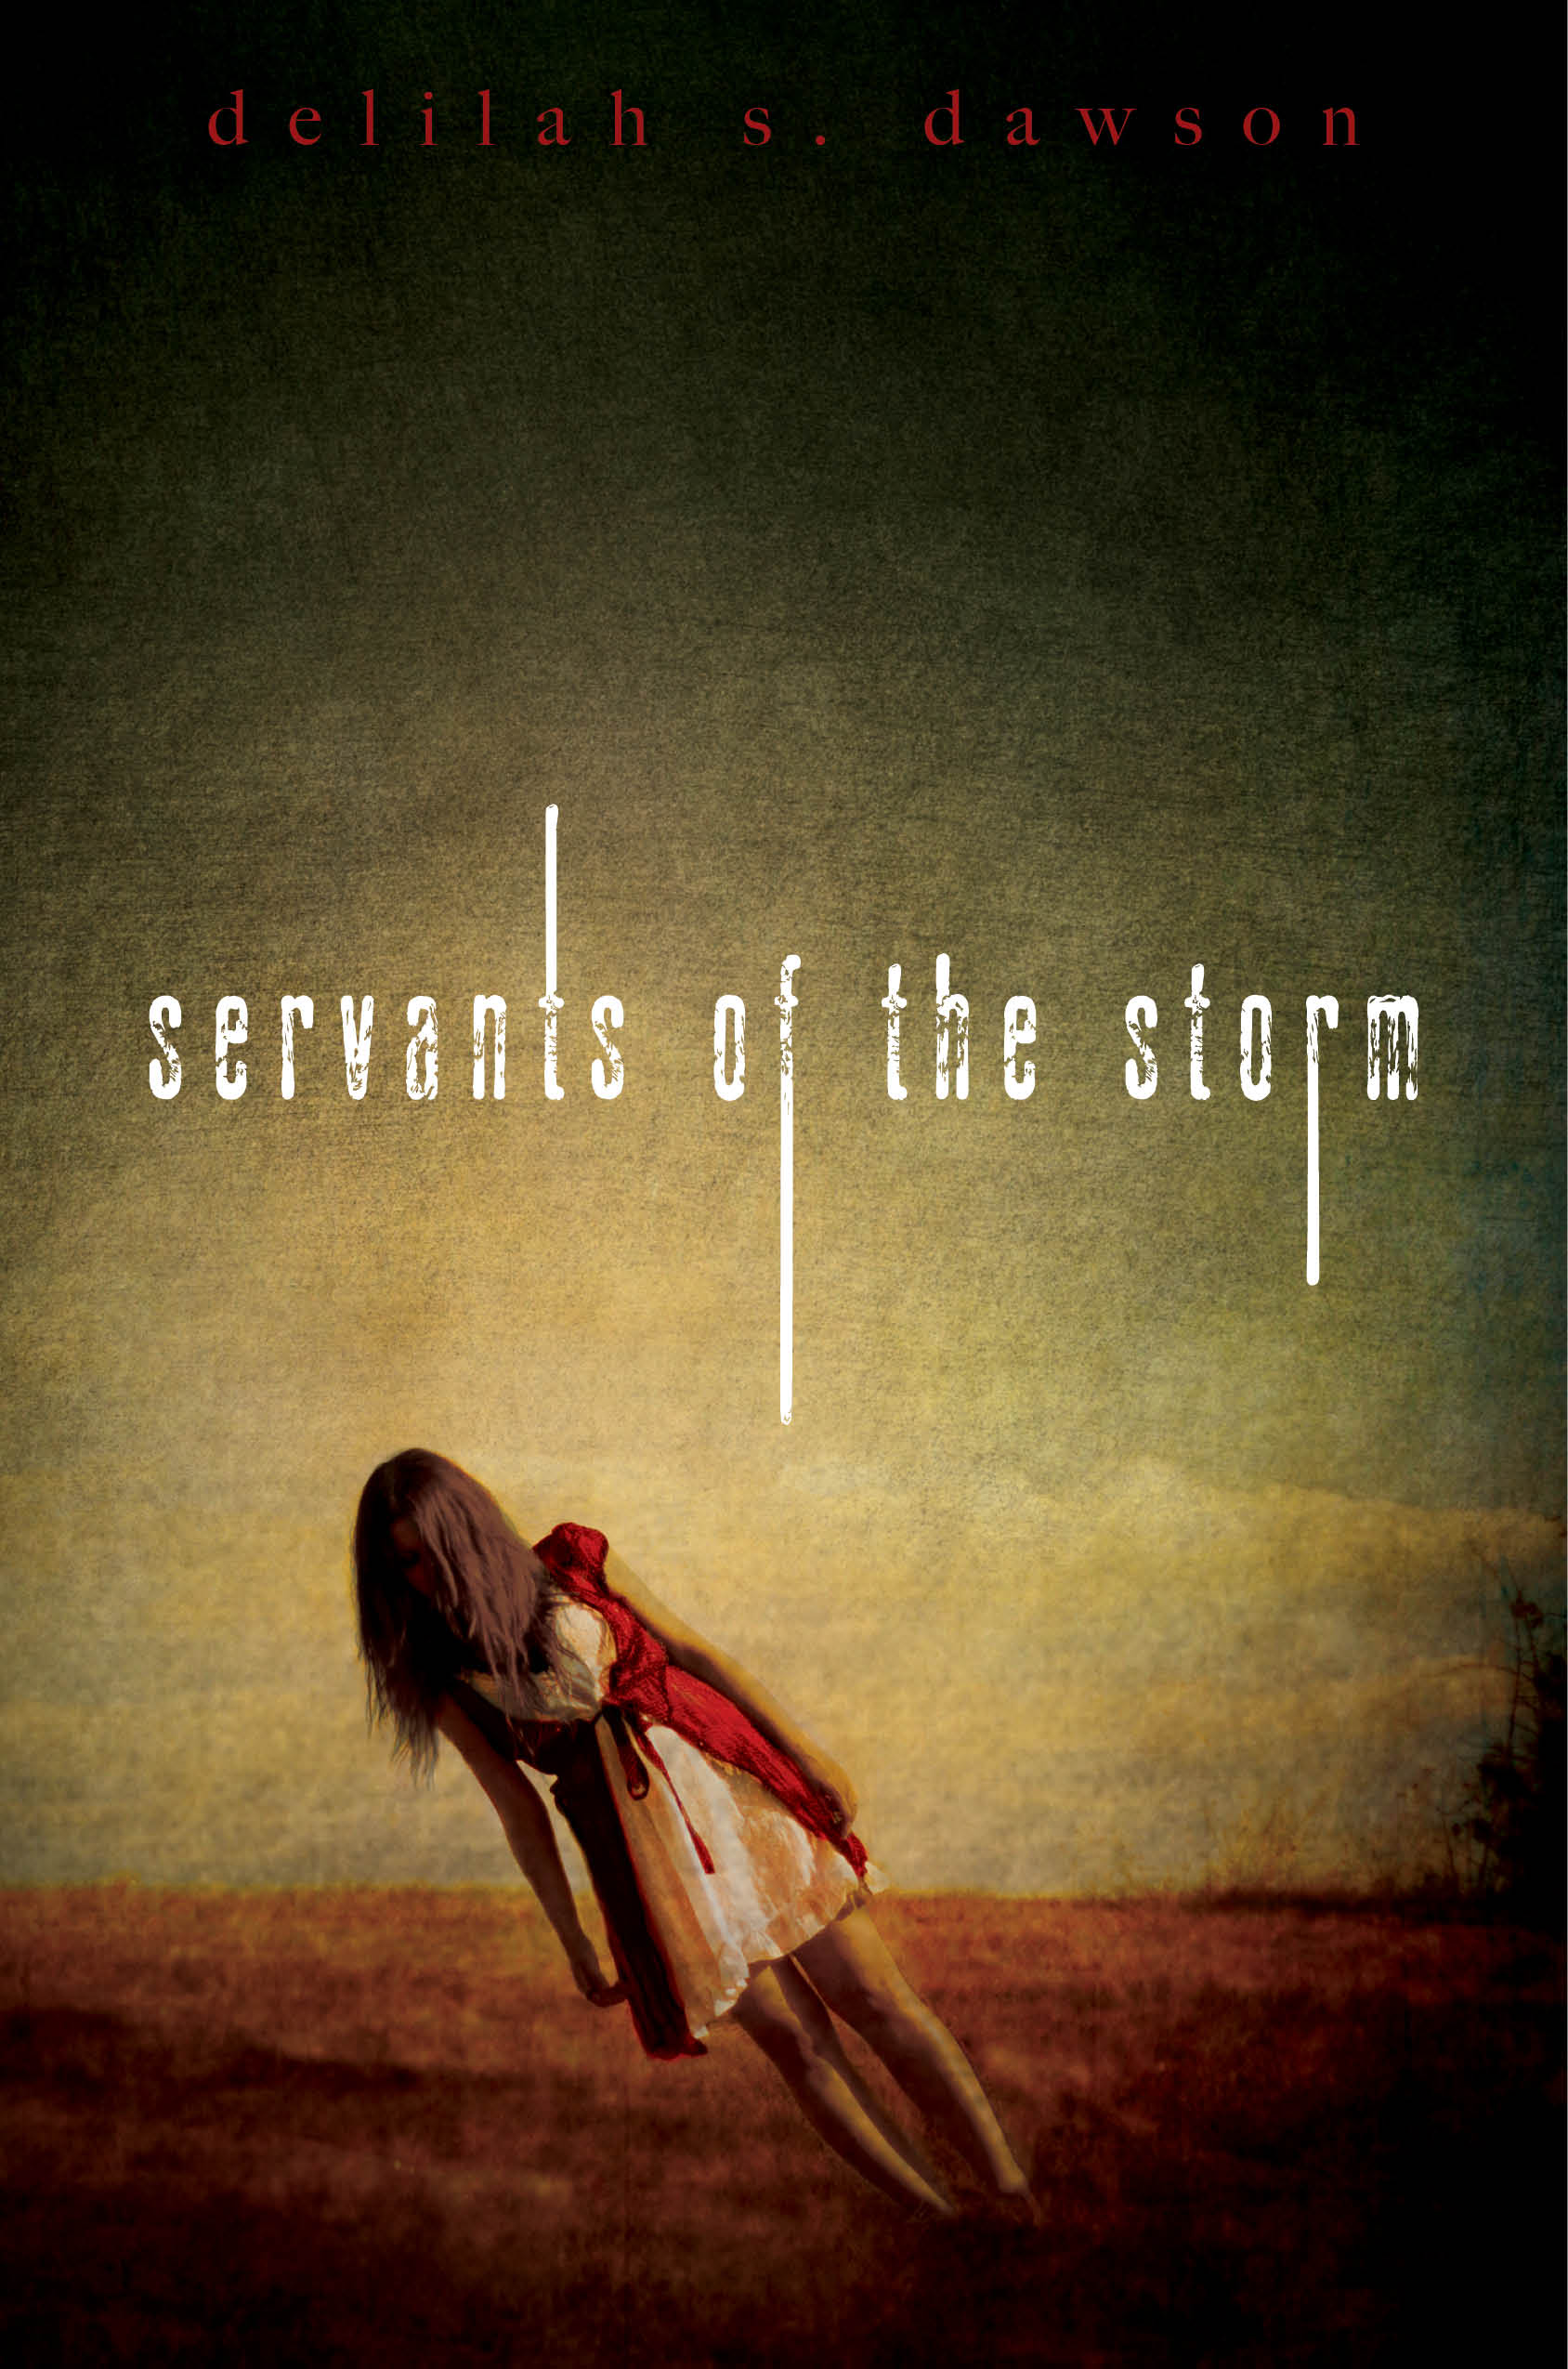 Servants of the storm 9781442483781 hr